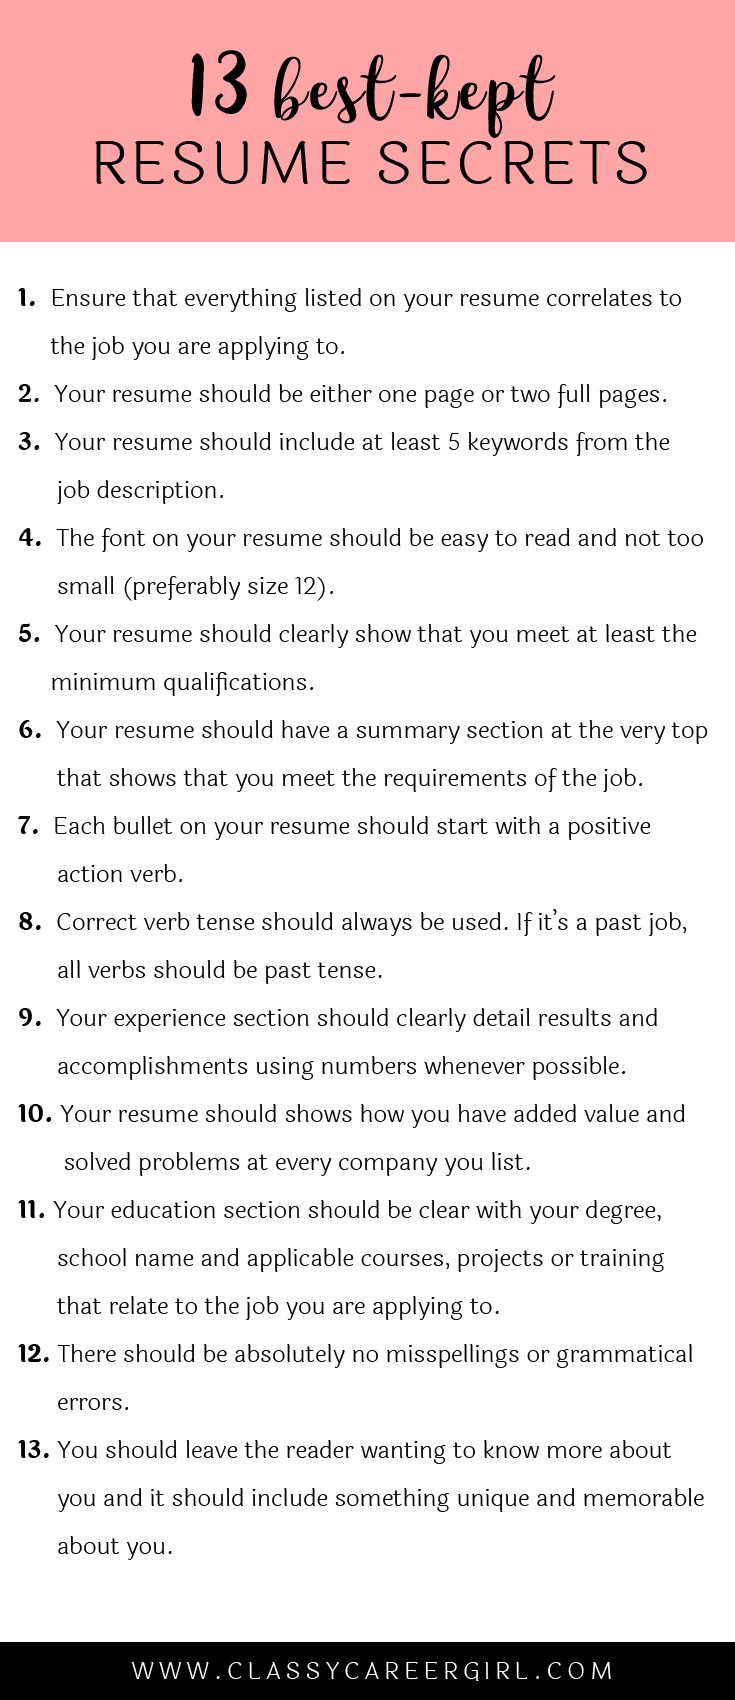 Opposenewapstandardsus  Pleasant  Ideas About Resume On Pinterest  Cv Format Resume Cv And  With Lovable Some Hiring Managers Will Toss Your Resume Out If You Dont Know These  With Nice Admin Assistant Resume Also Objective Of A Resume In Addition Fast Food Resume And Great Resume Objectives As Well As How To Write A Resume For College Additionally Resume Paper Weight From Pinterestcom With Opposenewapstandardsus  Lovable  Ideas About Resume On Pinterest  Cv Format Resume Cv And  With Nice Some Hiring Managers Will Toss Your Resume Out If You Dont Know These  And Pleasant Admin Assistant Resume Also Objective Of A Resume In Addition Fast Food Resume From Pinterestcom